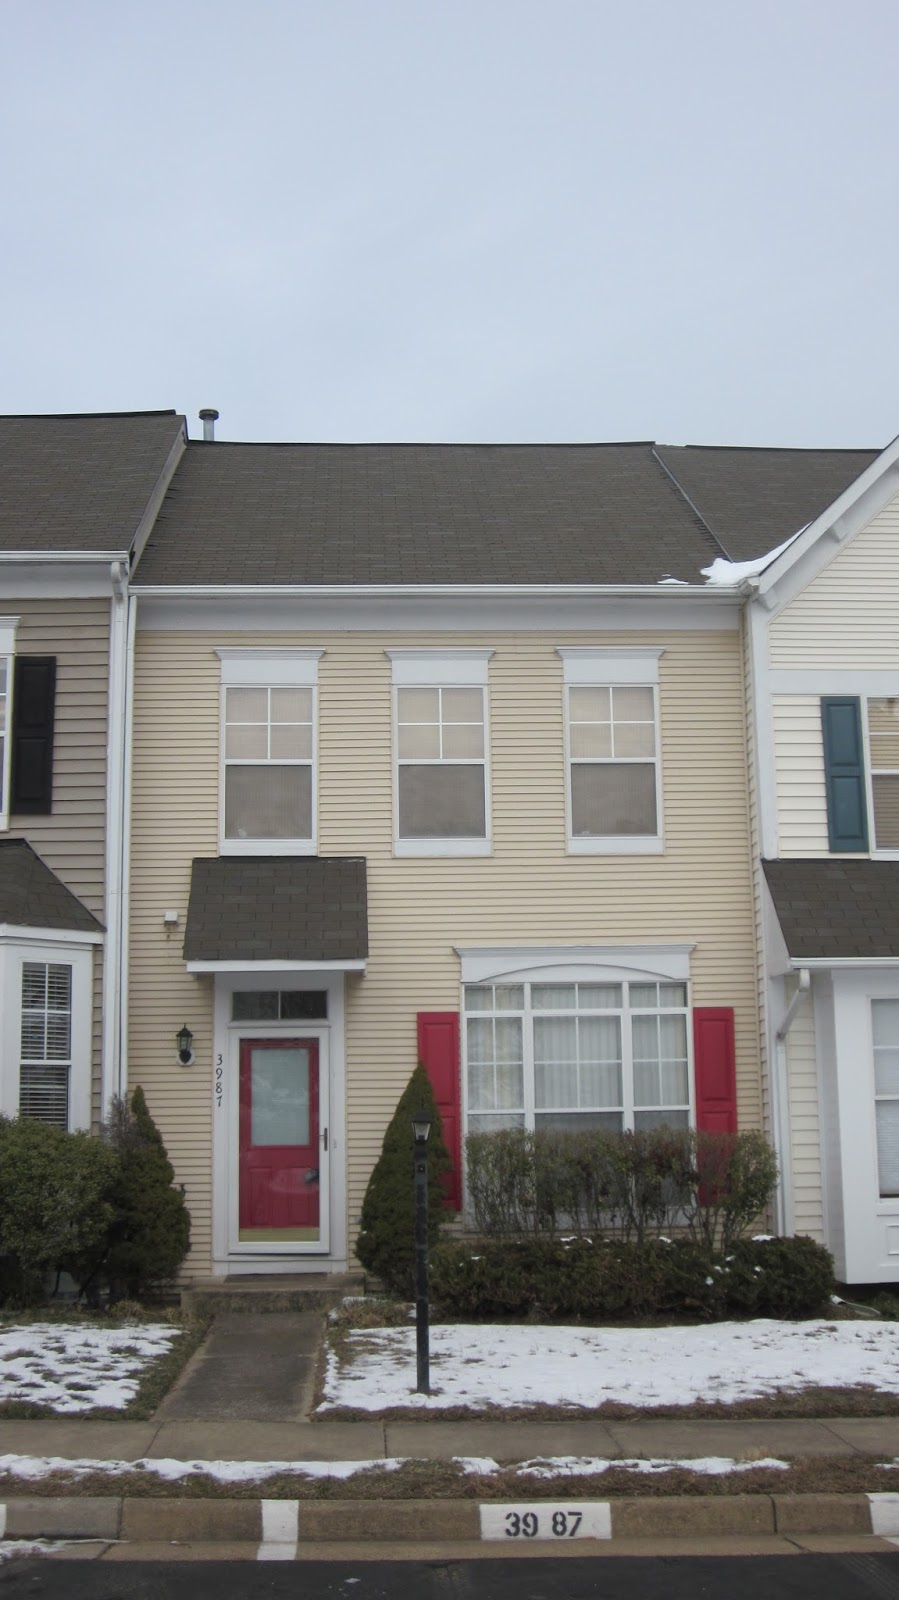 285 4319 lake ridge for rent 3987 hartlake st woodbridge va 22192